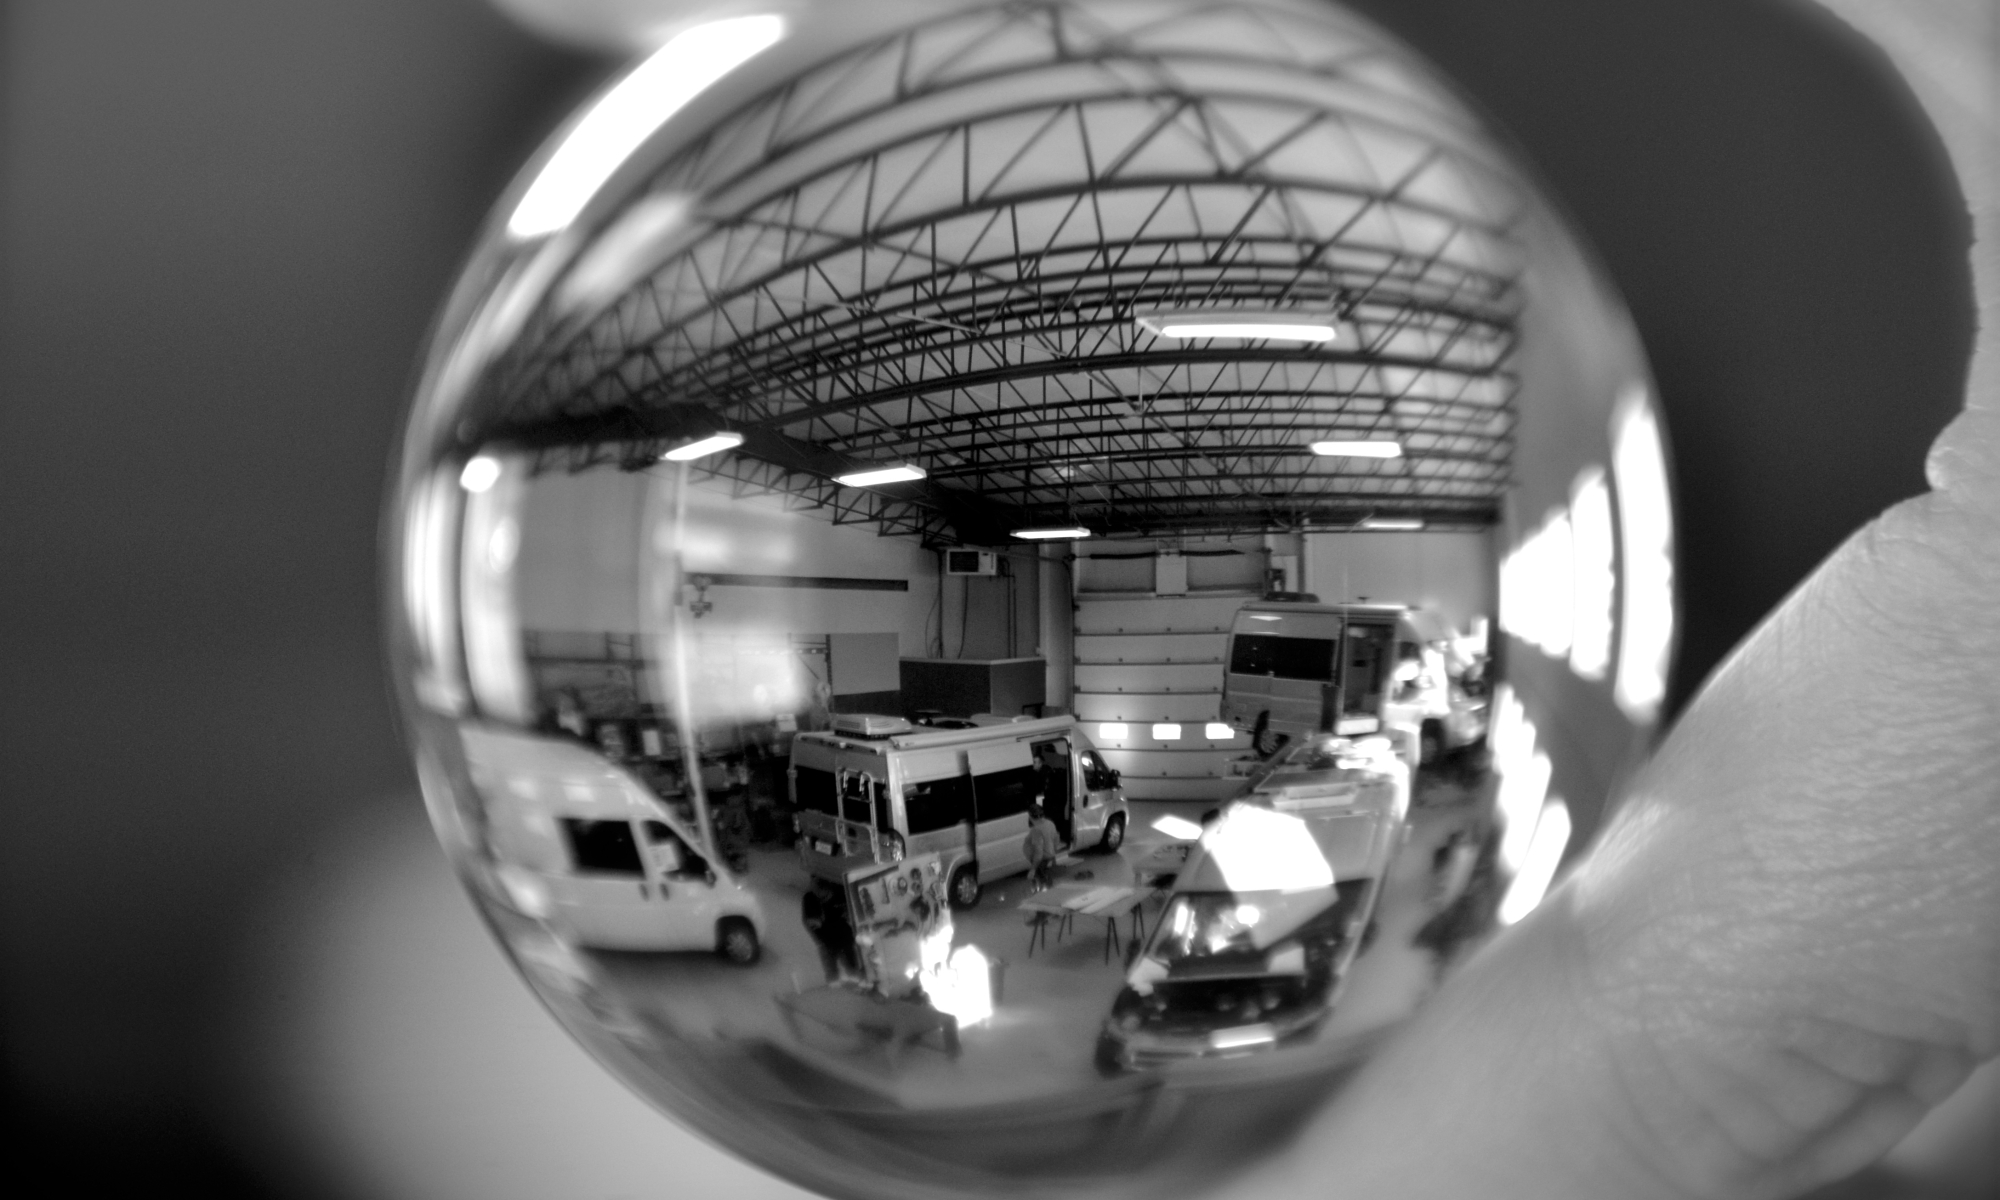 Panoramic RV - Employees - Lensball